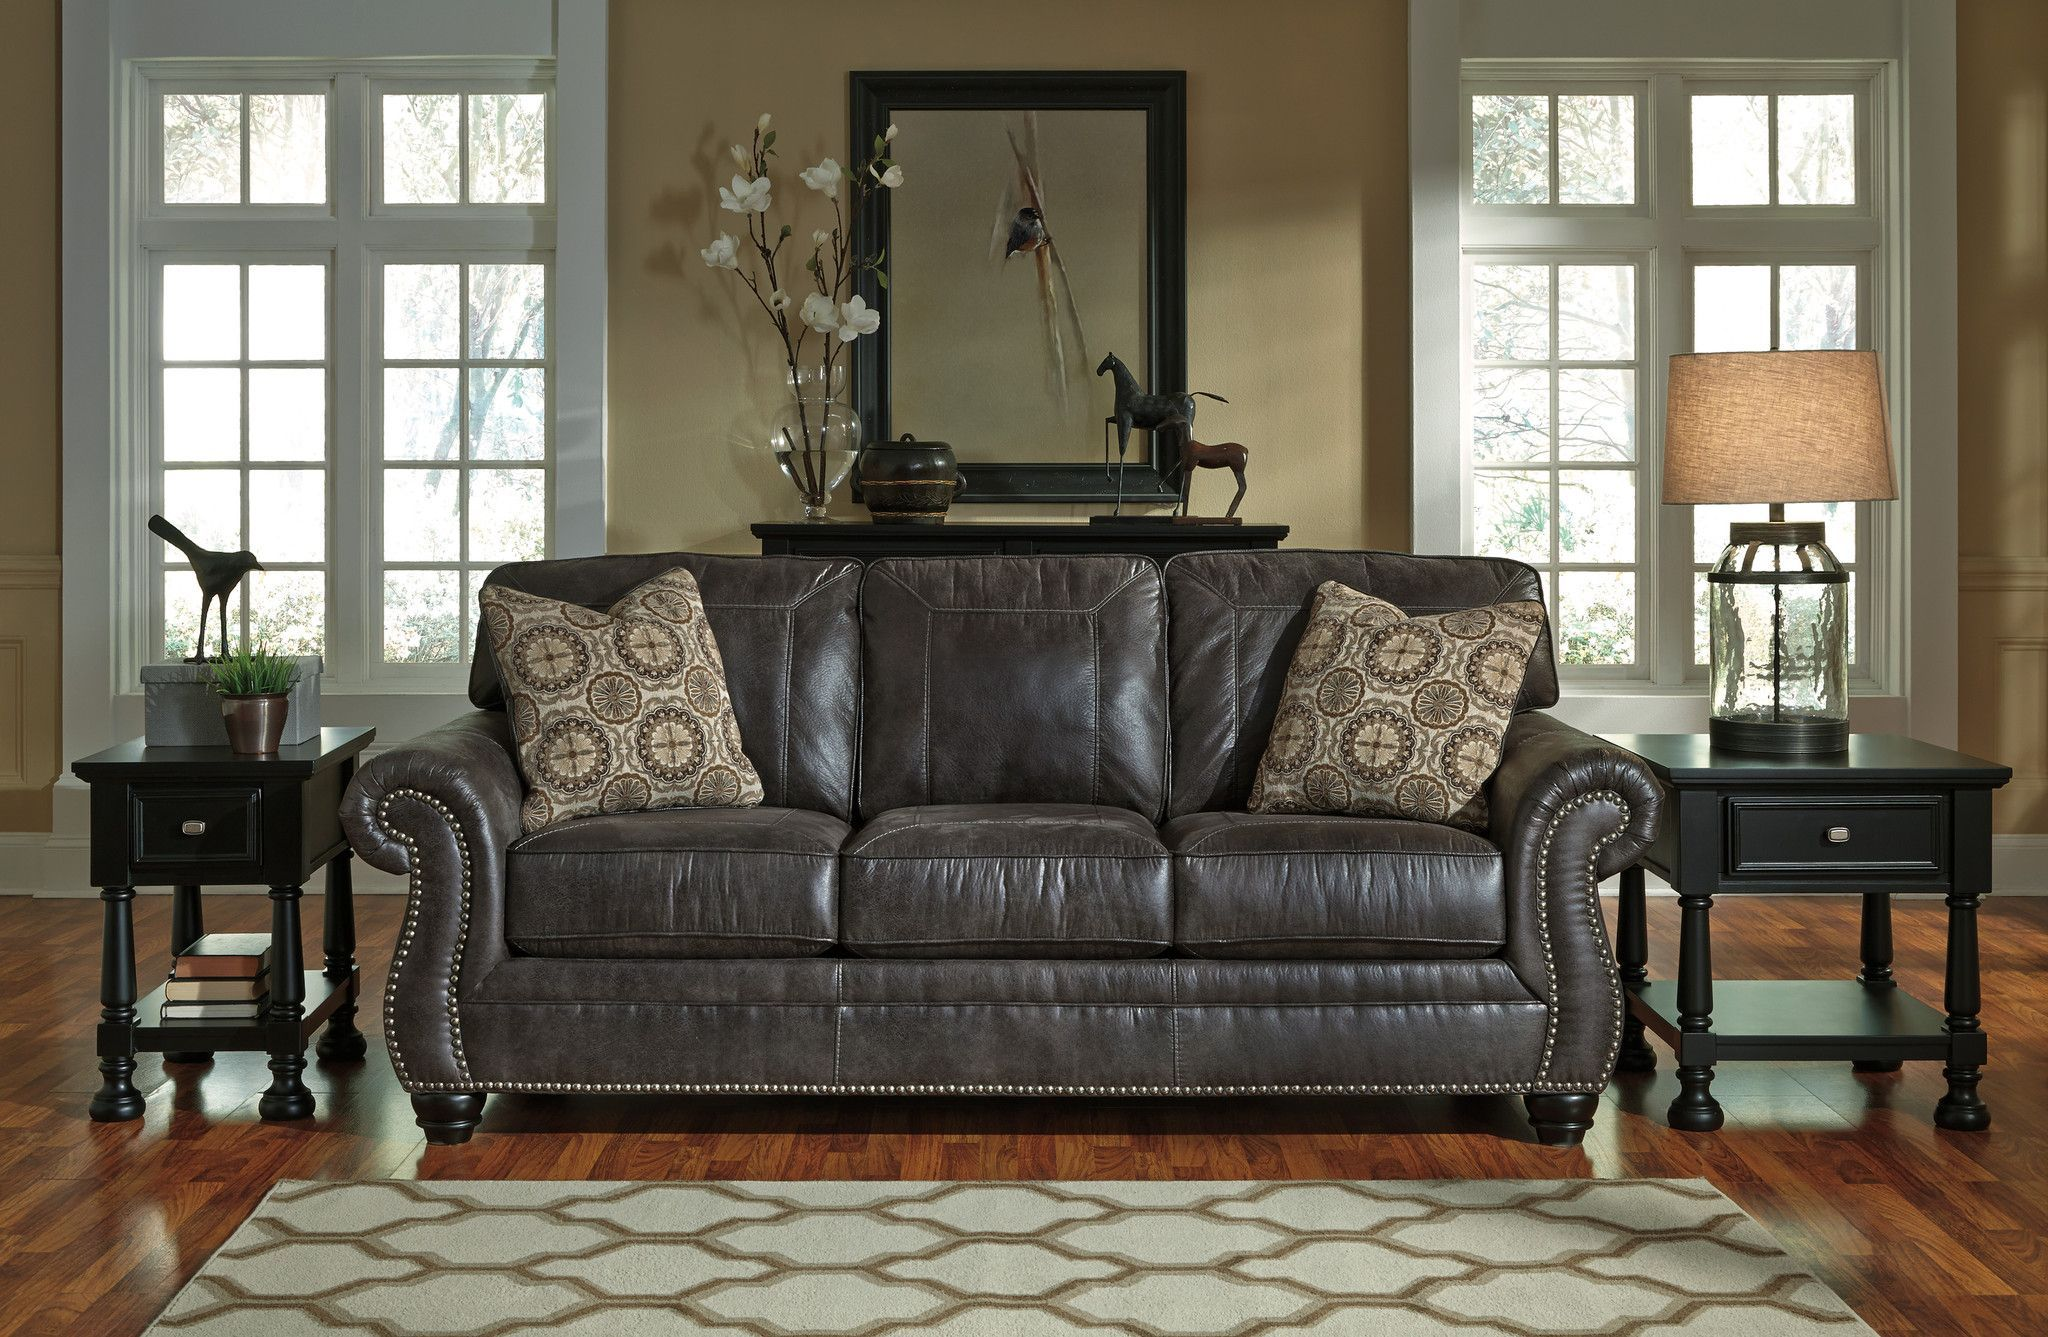 Living Room Sofa Breville Sofa by Ashley Furniture at Kensington